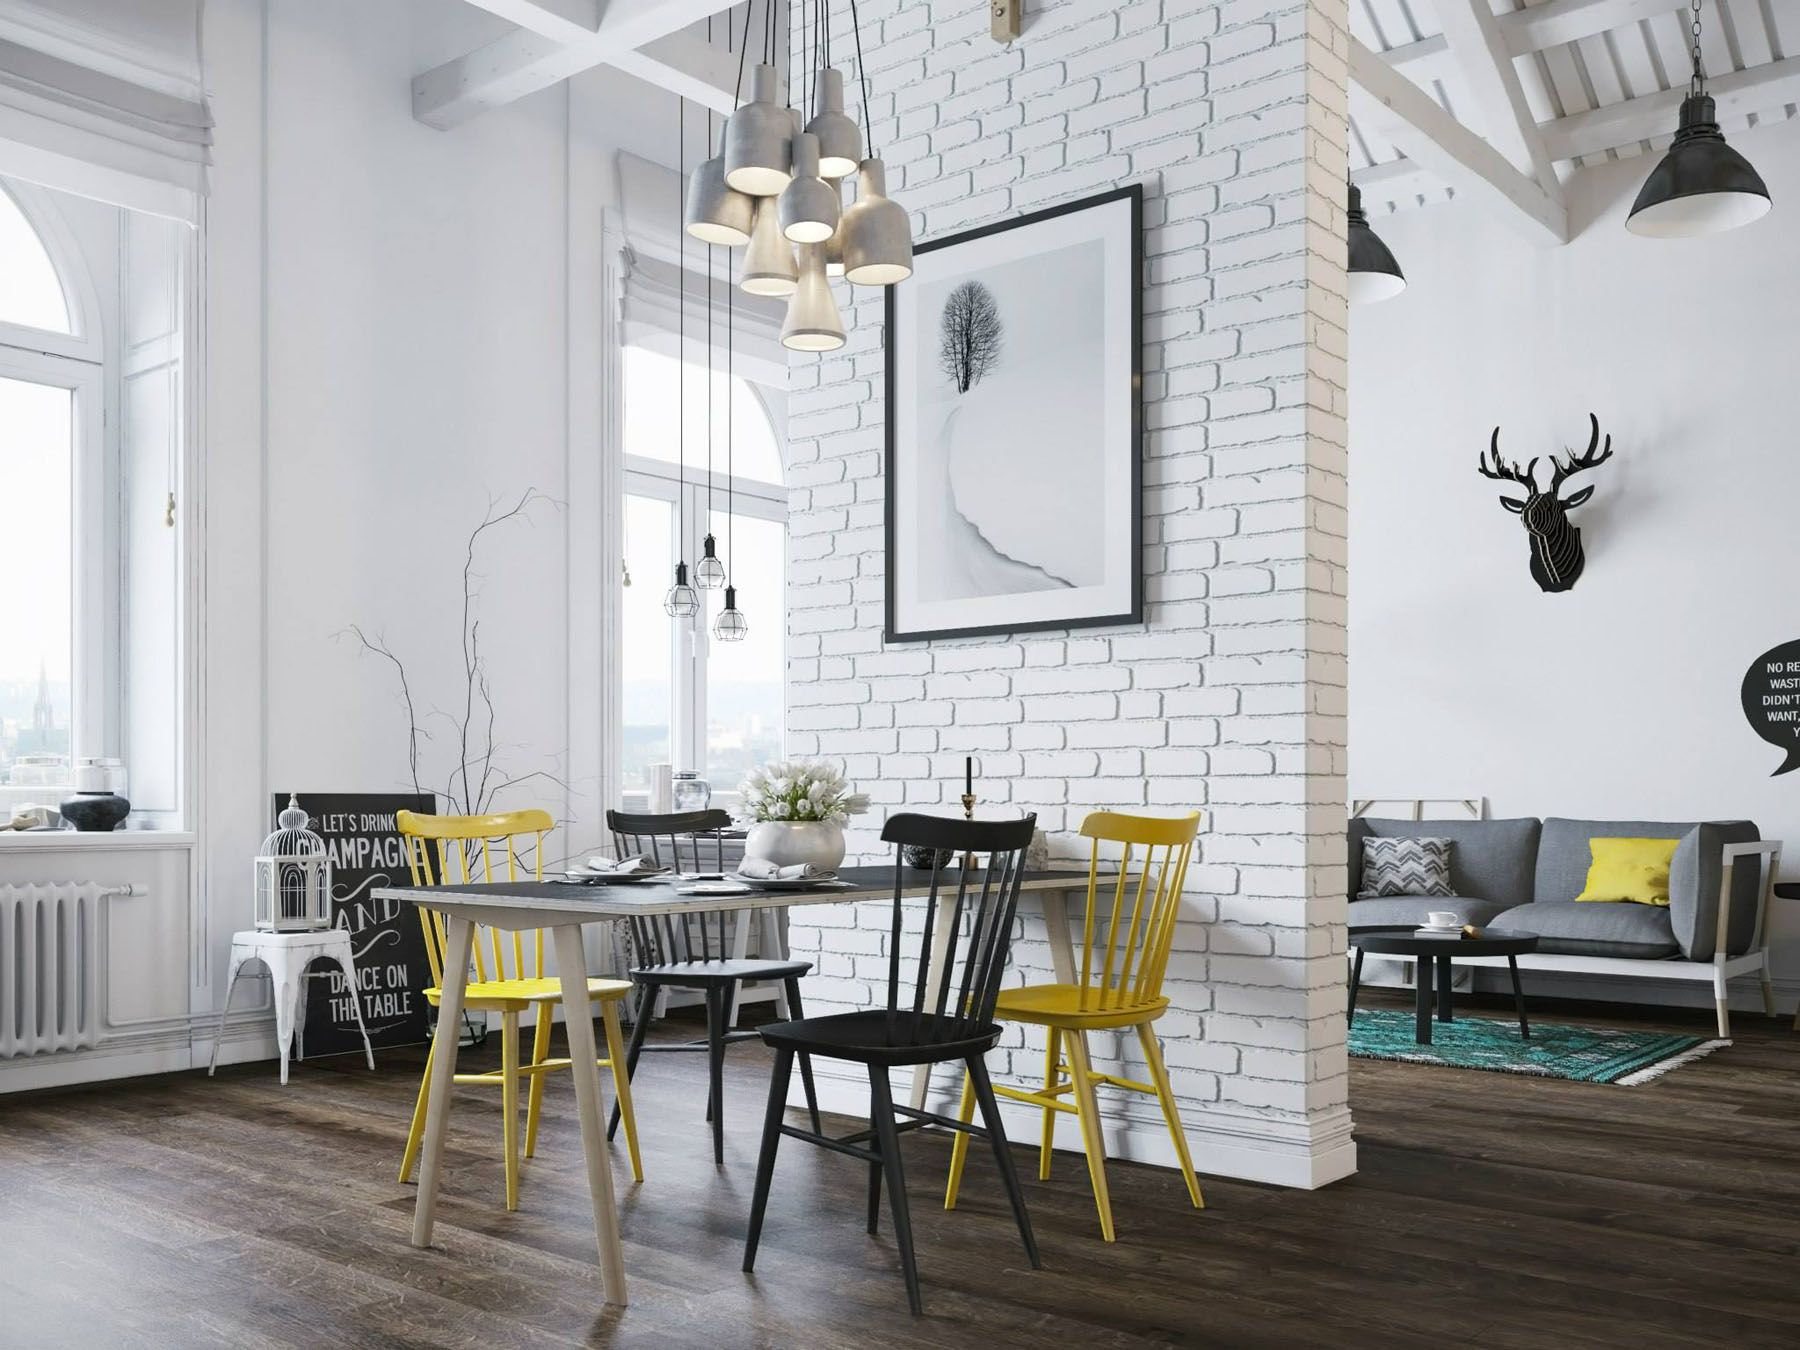 Small modern loft in prague with scandinavian style decor - Scandinavian interior design magazine ...